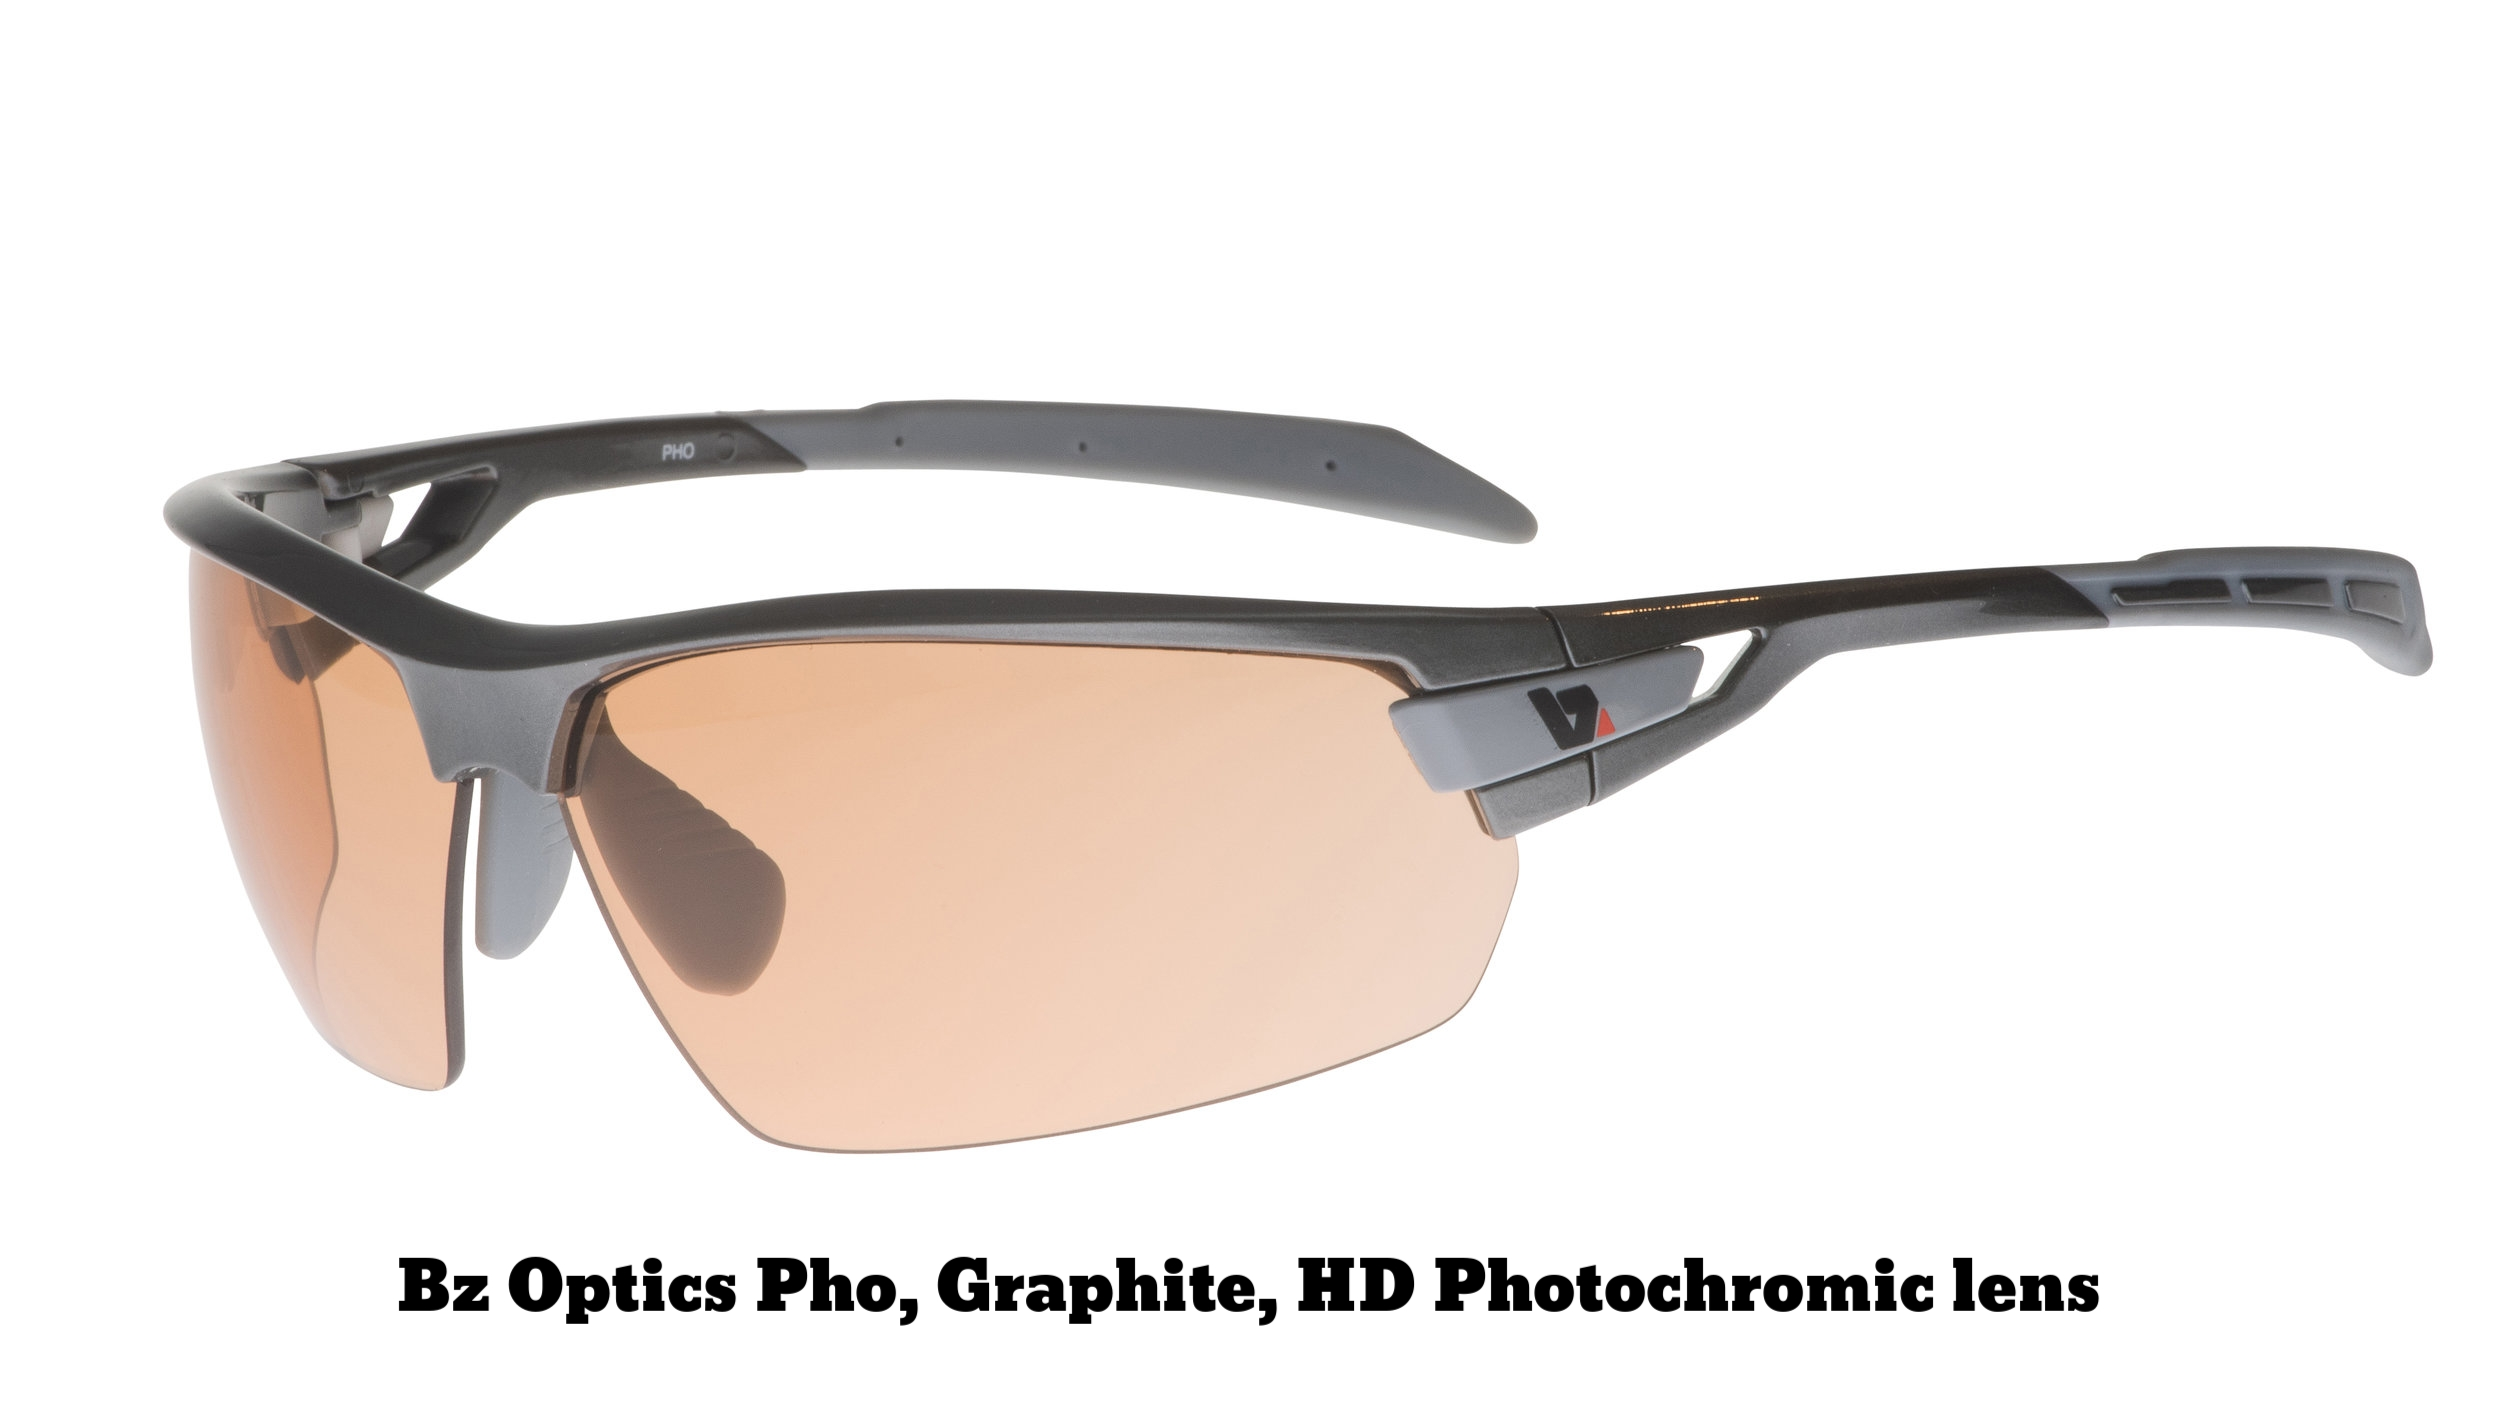 Pho graphite hd photochromic